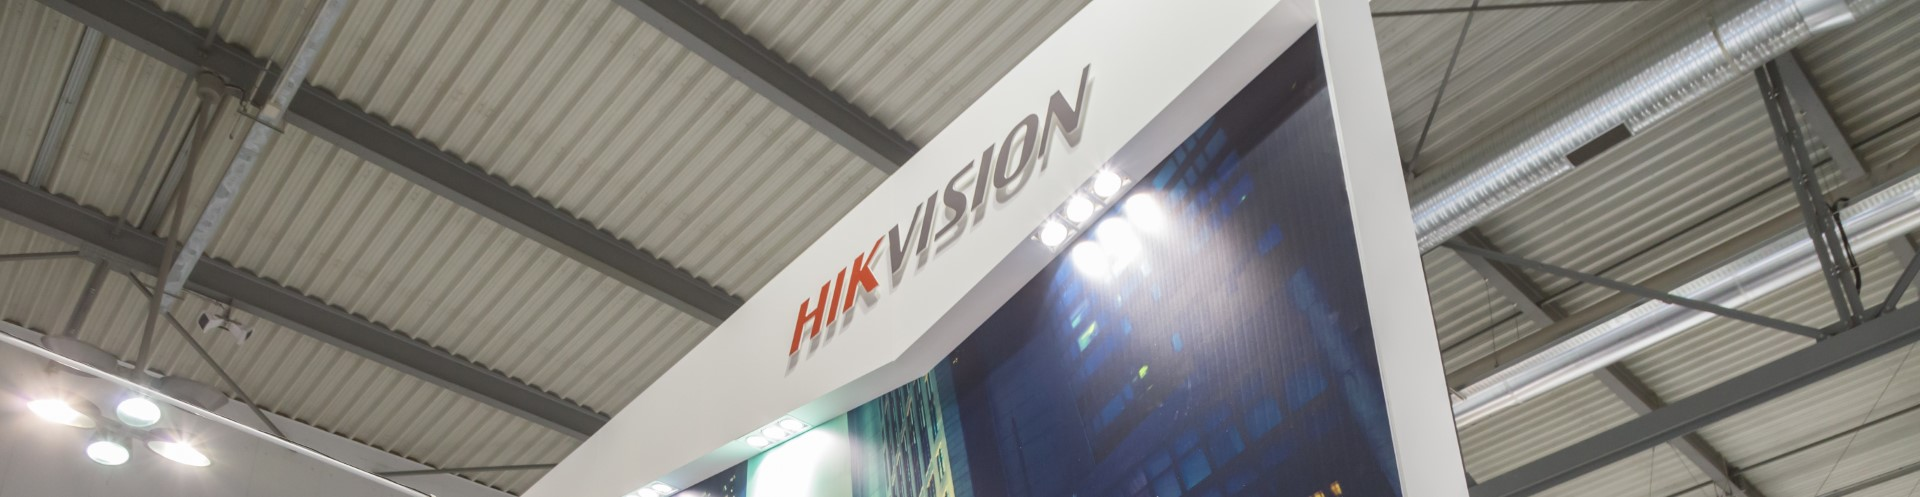 Hikvision Logo am Messestand